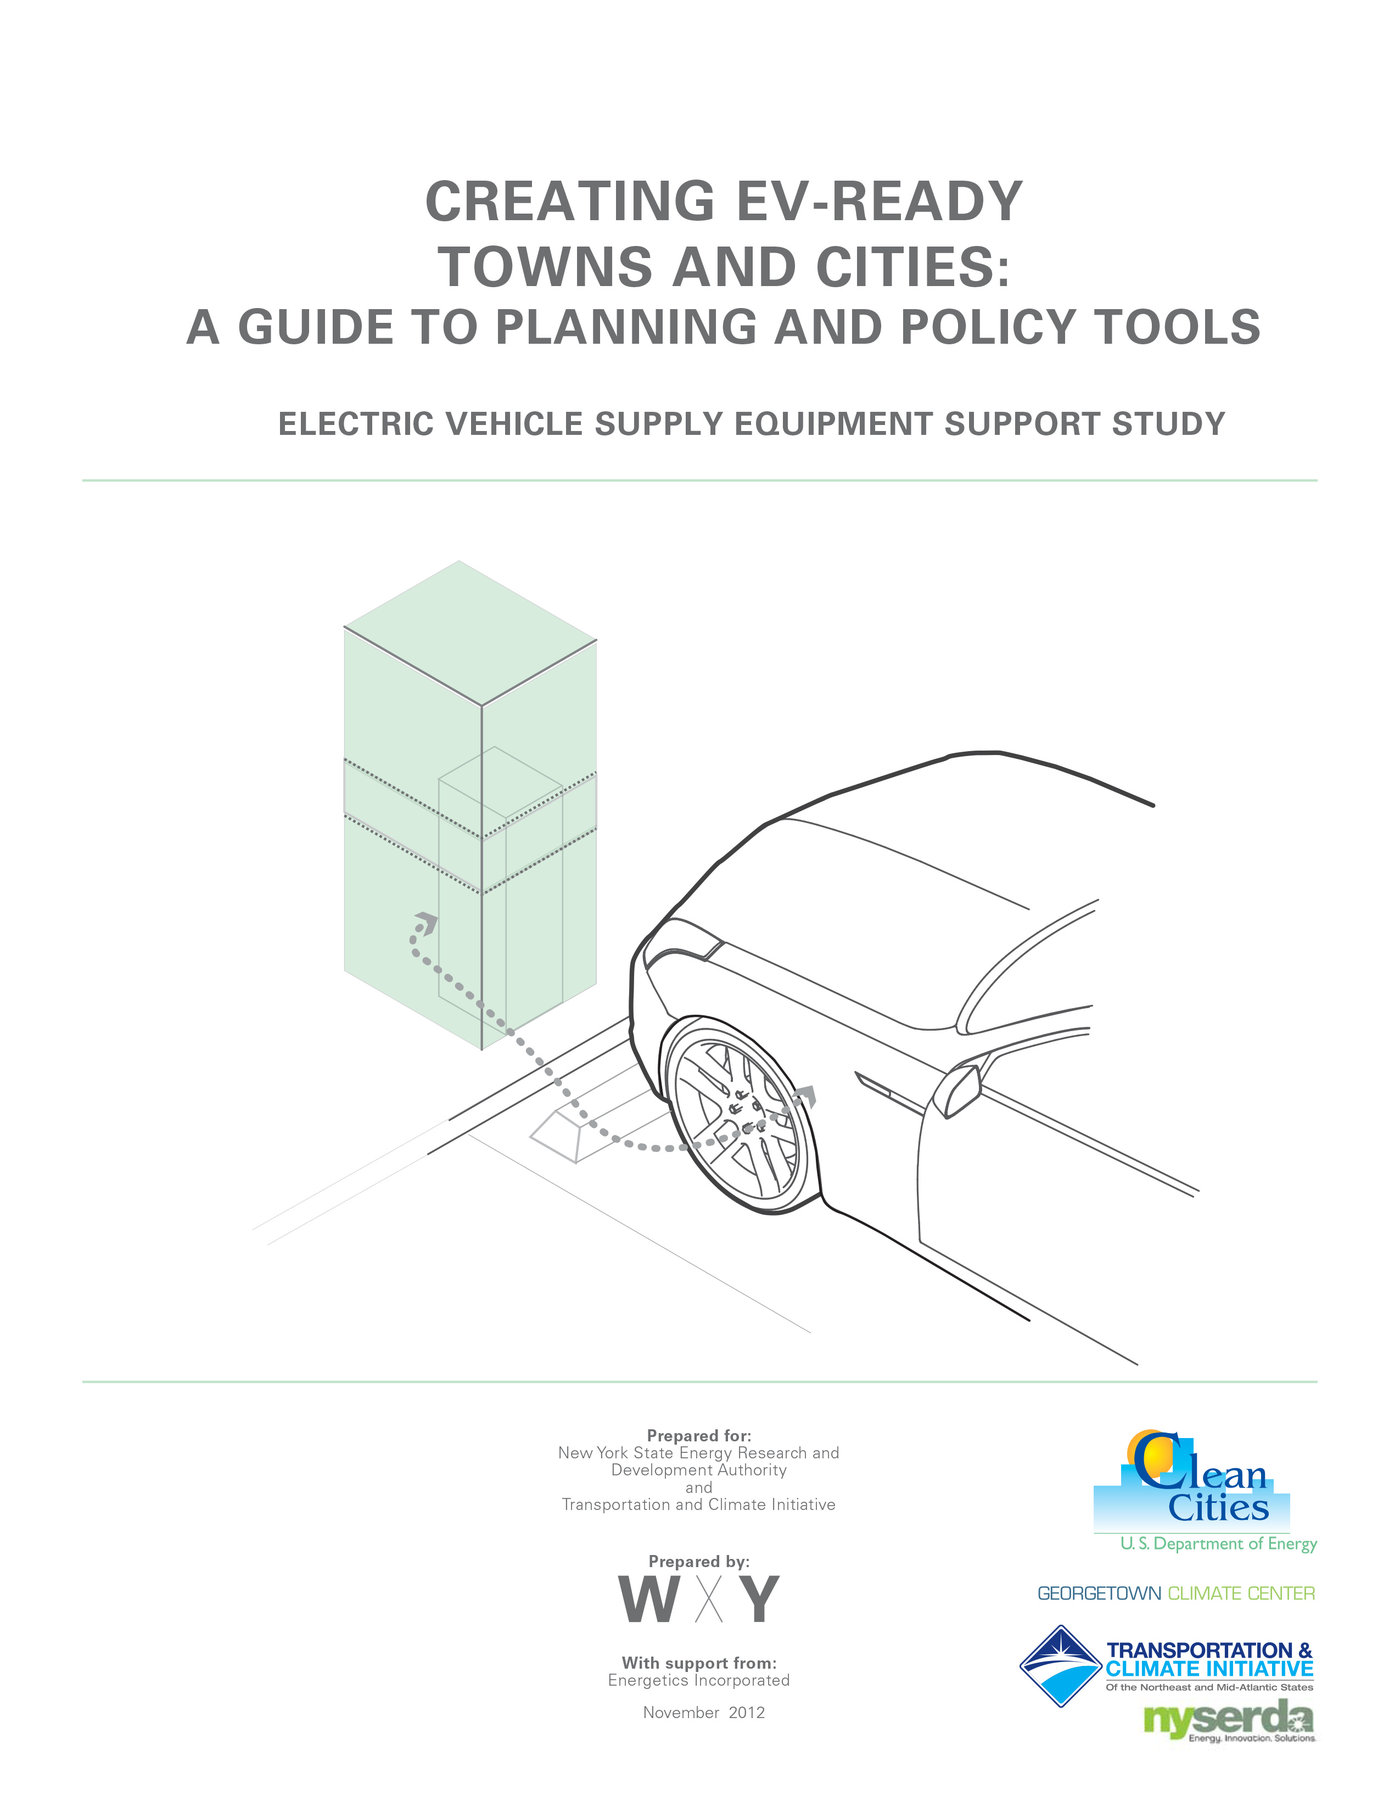 Evse planning policy tool guide wxy cover 1 1400 xxx q85